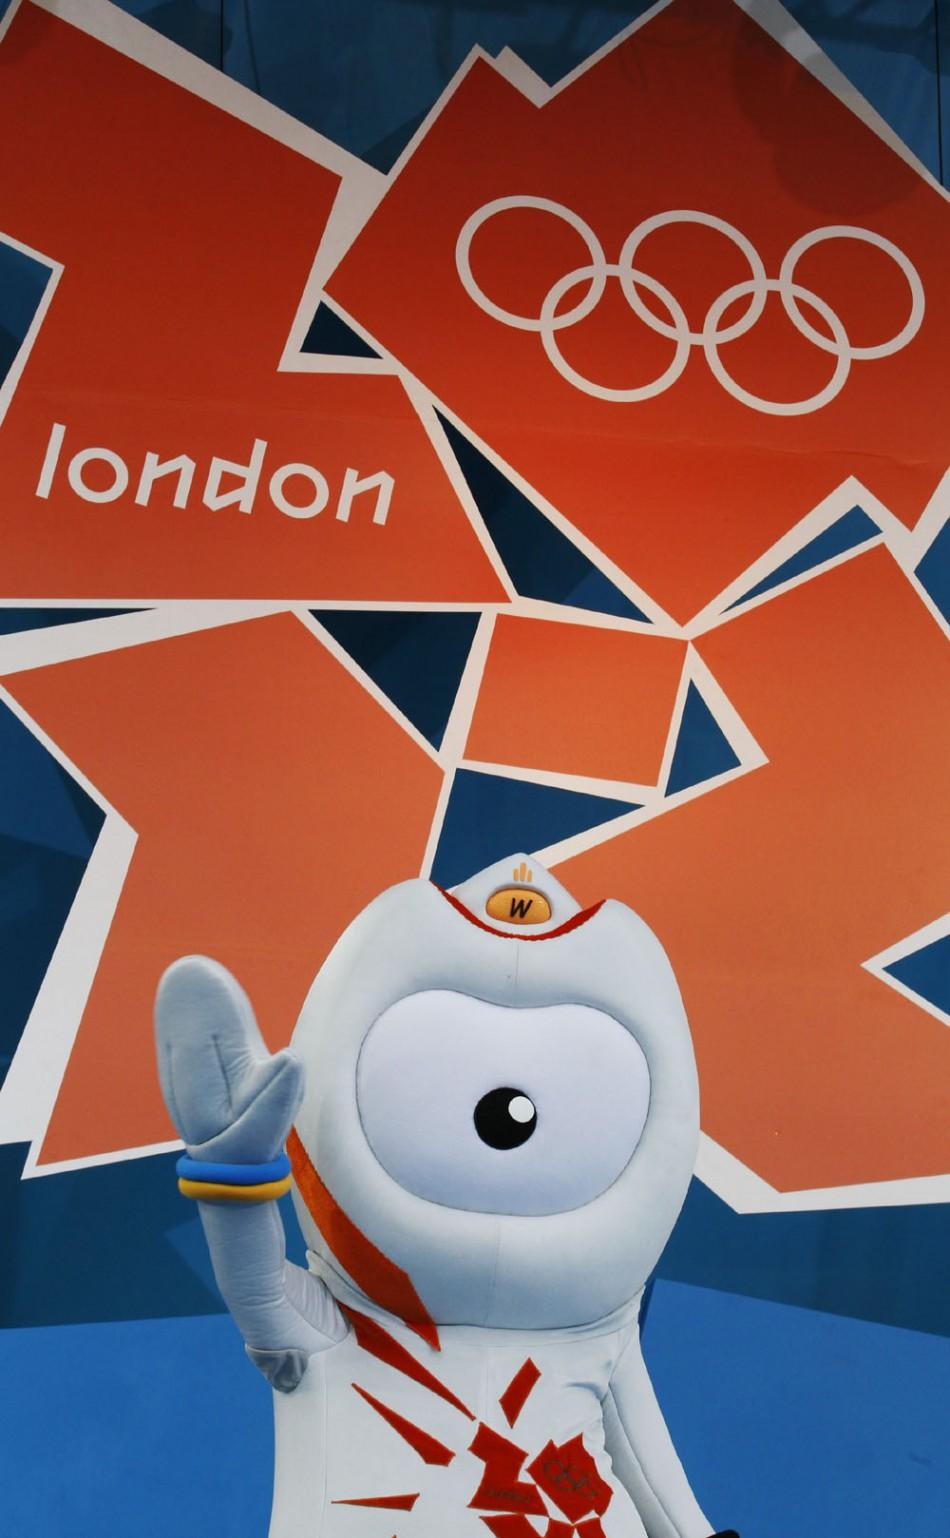 London 2012 Olympic Games Mascot Wenlock [PHOTO]